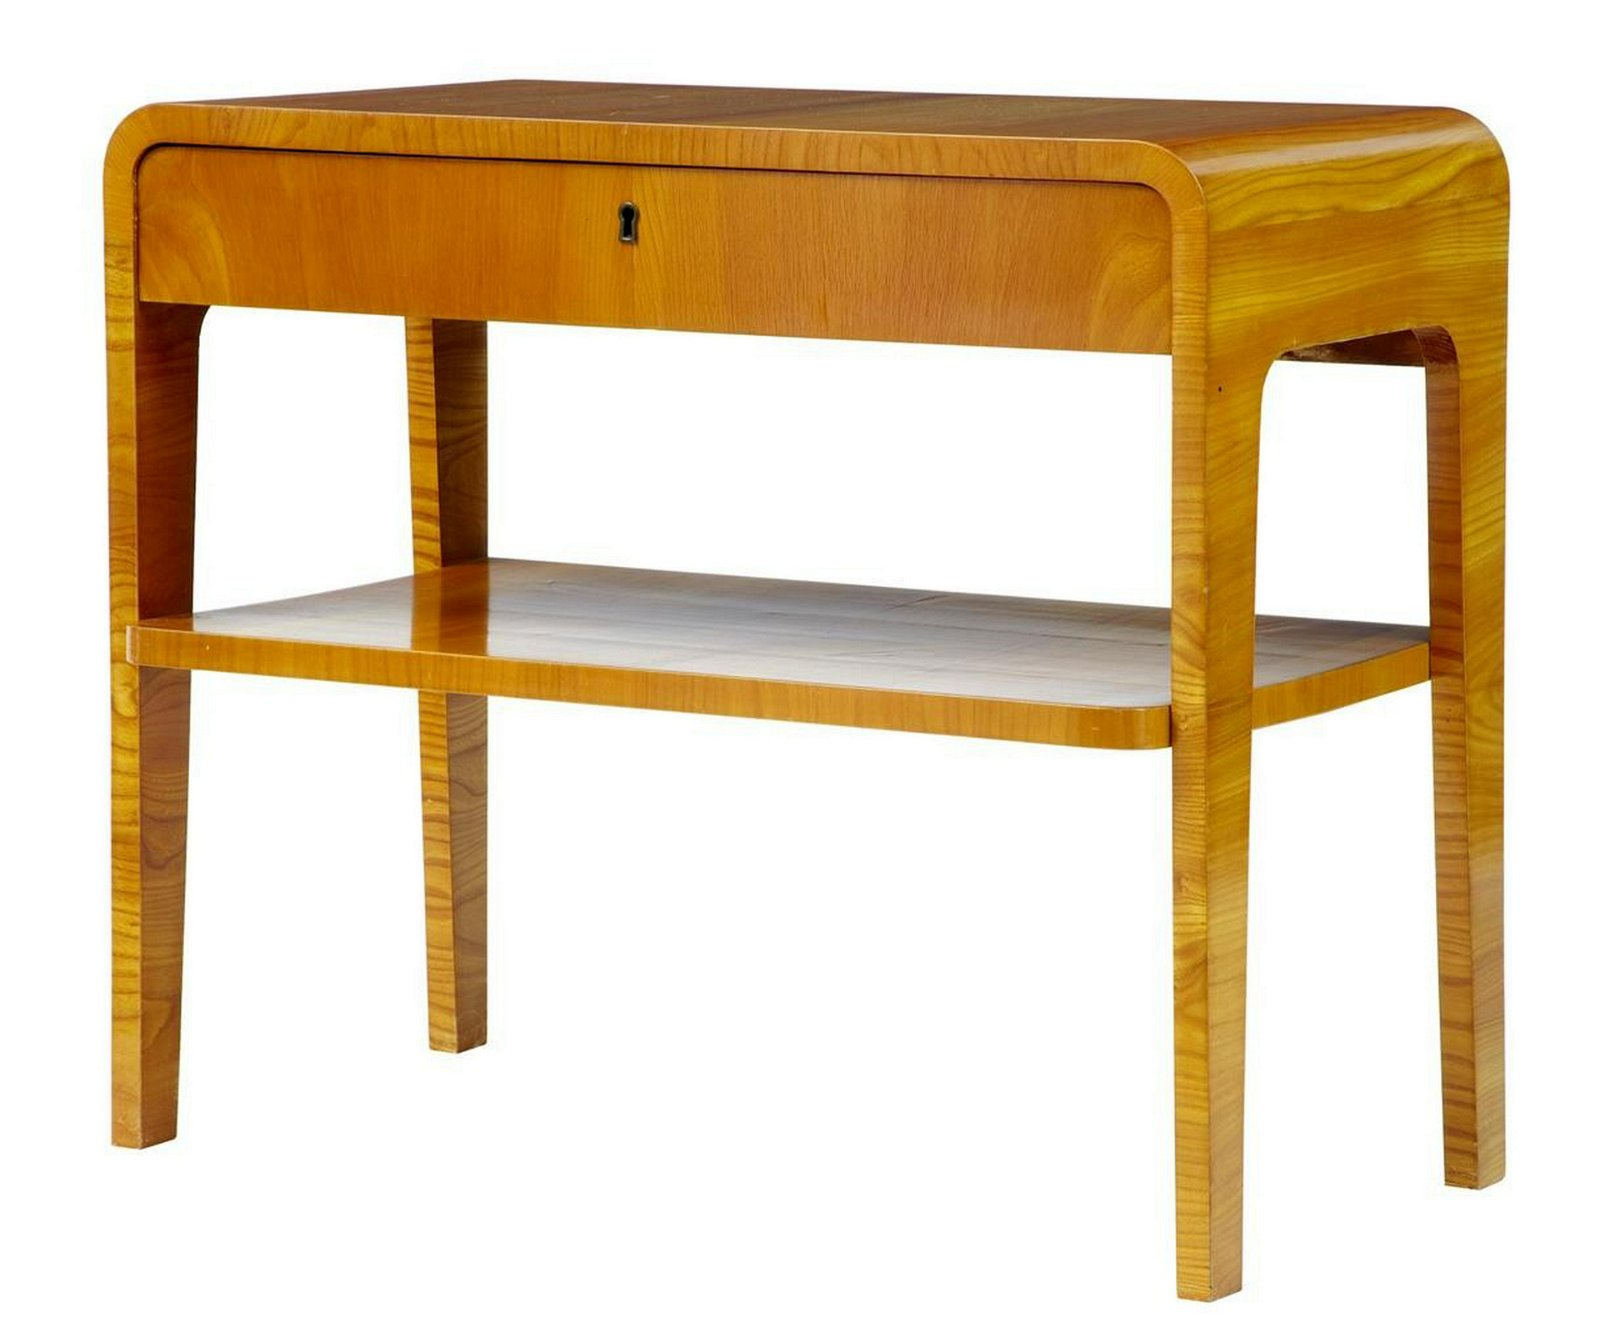 20TH CENTURY LATER ART DECO BIRCH BEDSIDE OCCASIONAL